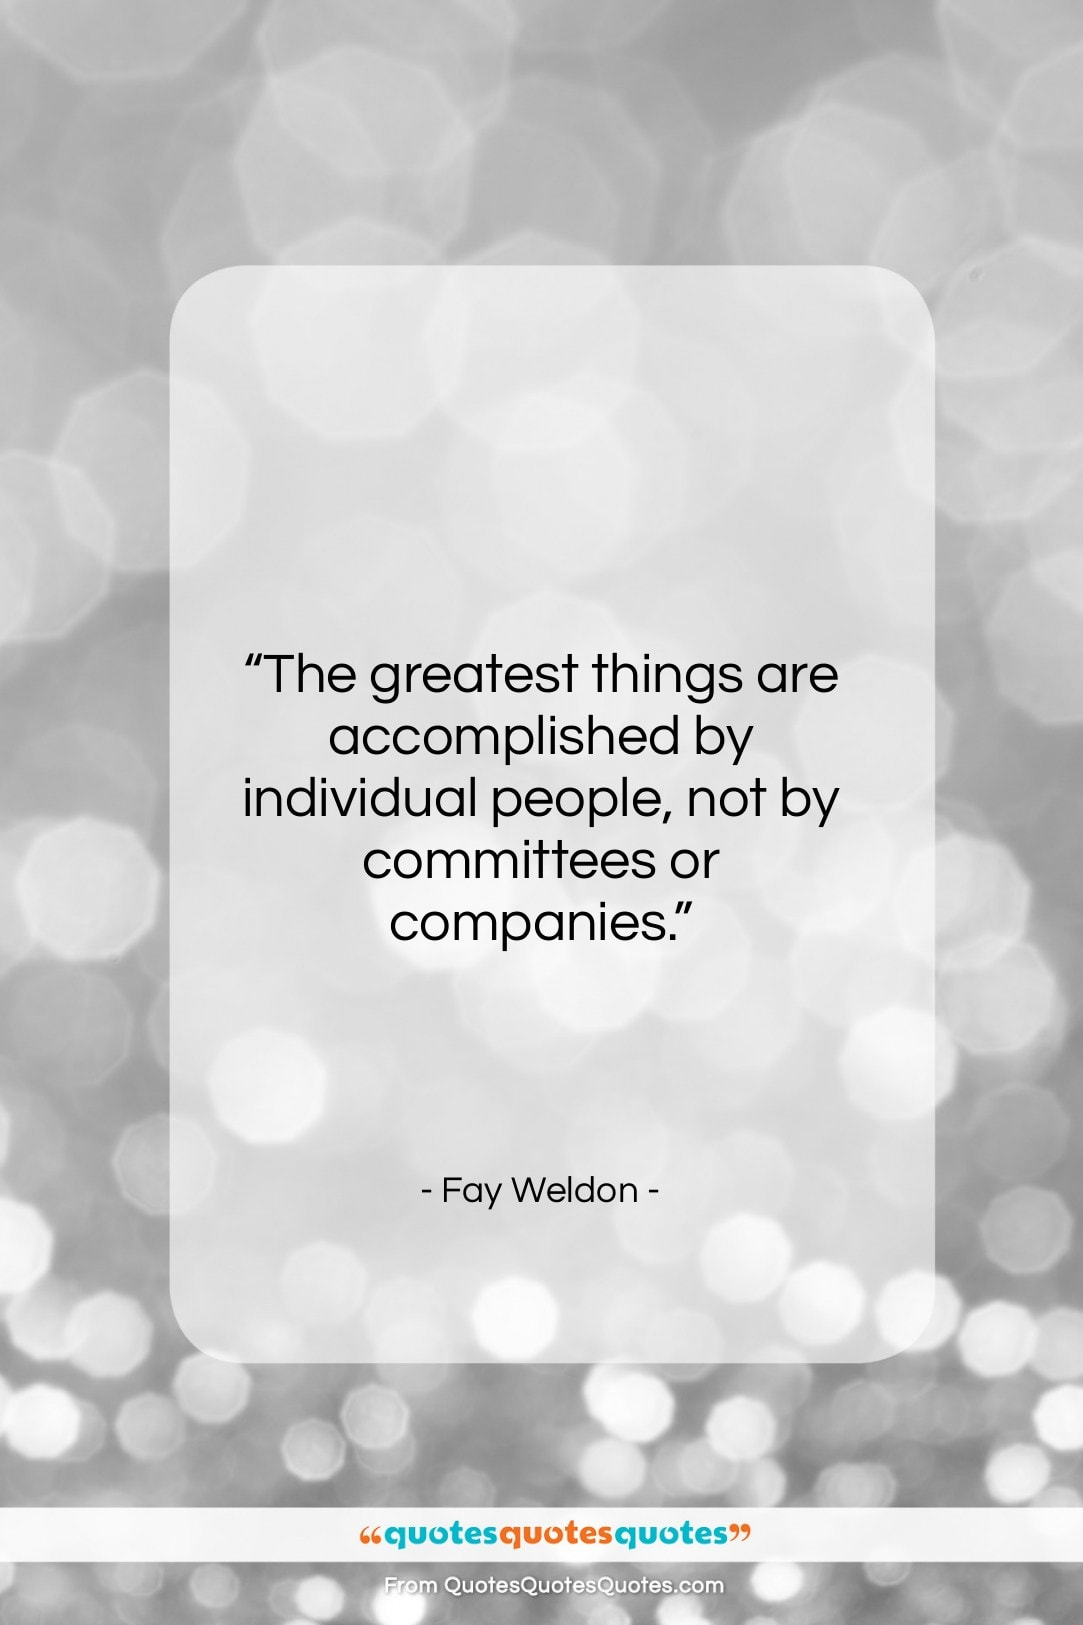 """Fay Weldon quote: """"The greatest things are accomplished by individual…""""- at QuotesQuotesQuotes.com"""